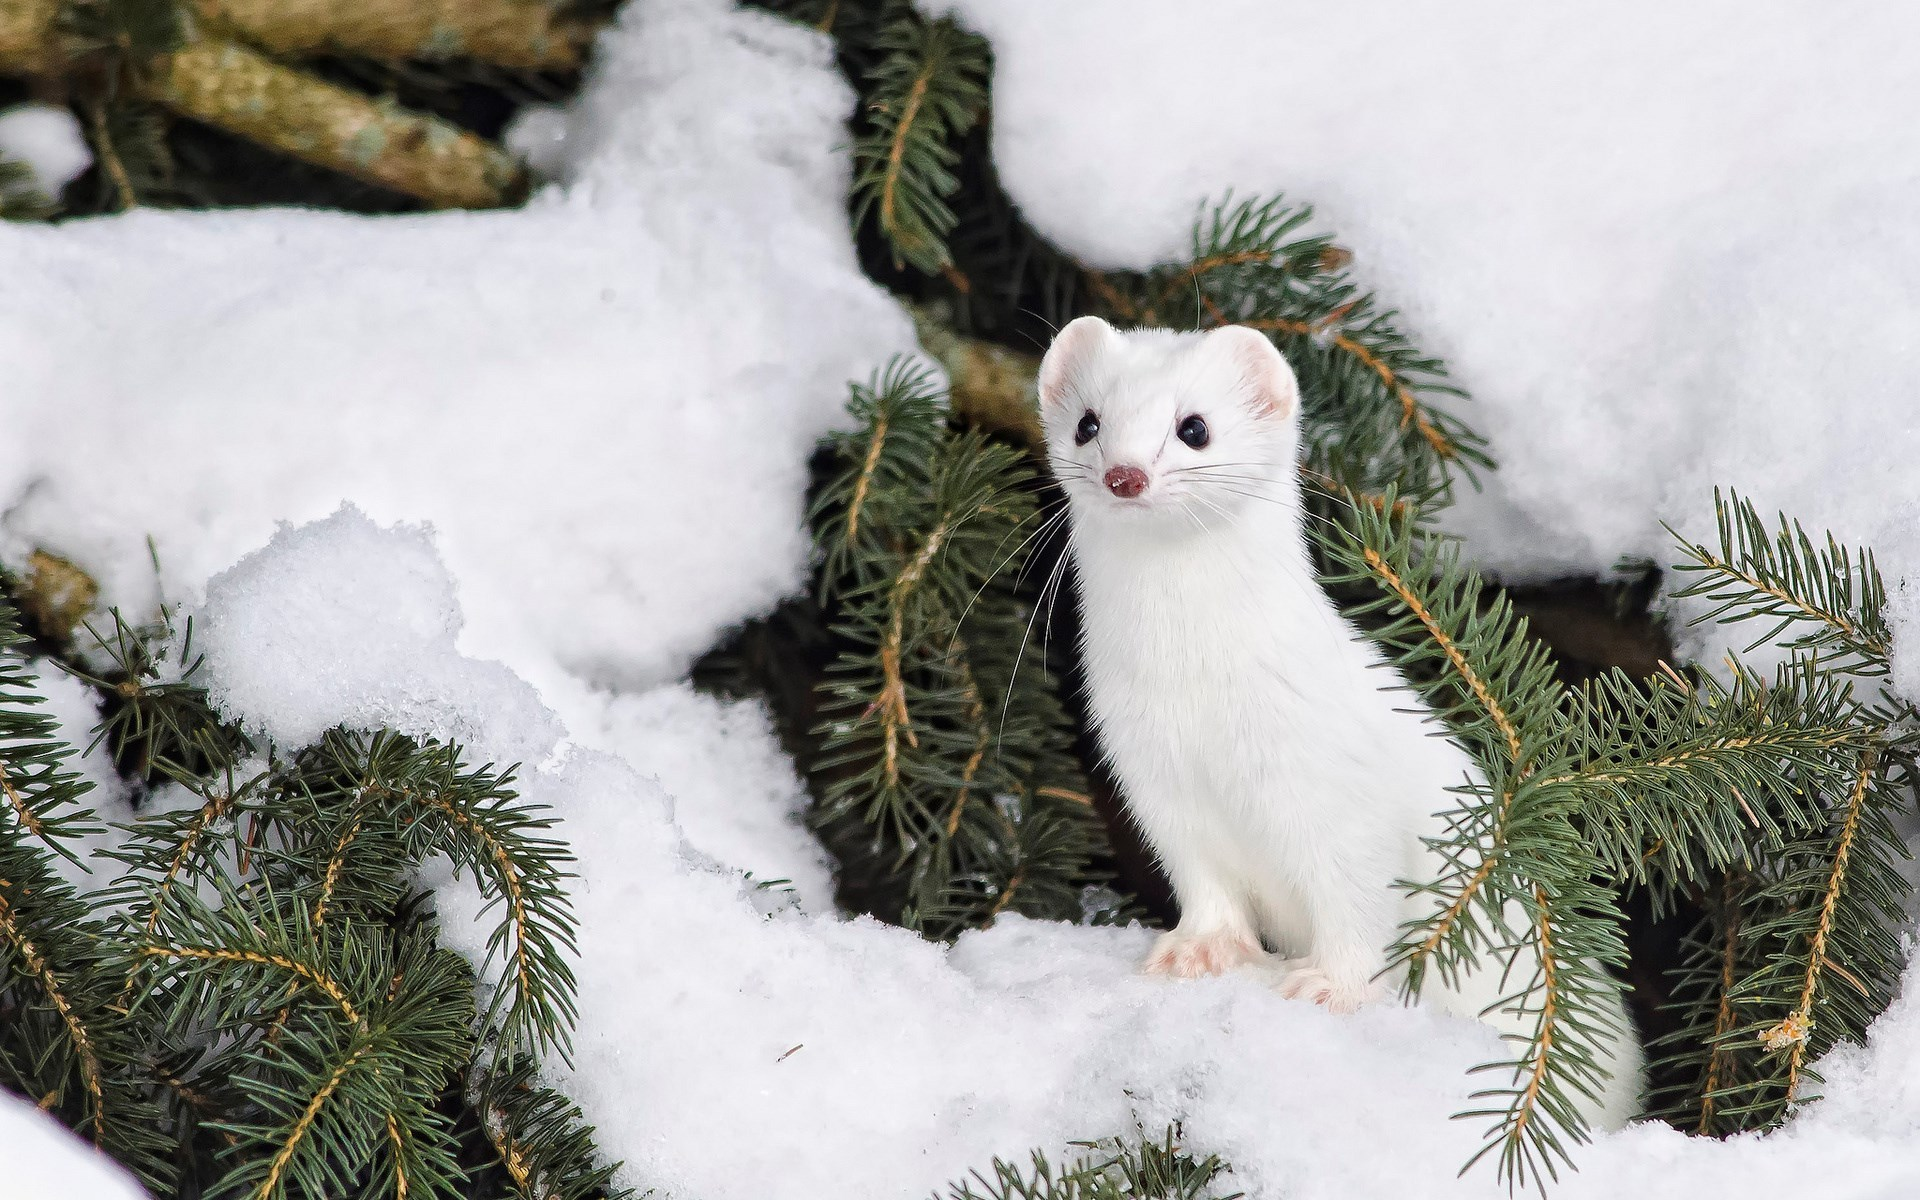 White stoat among pine tree branches in snowy environment.